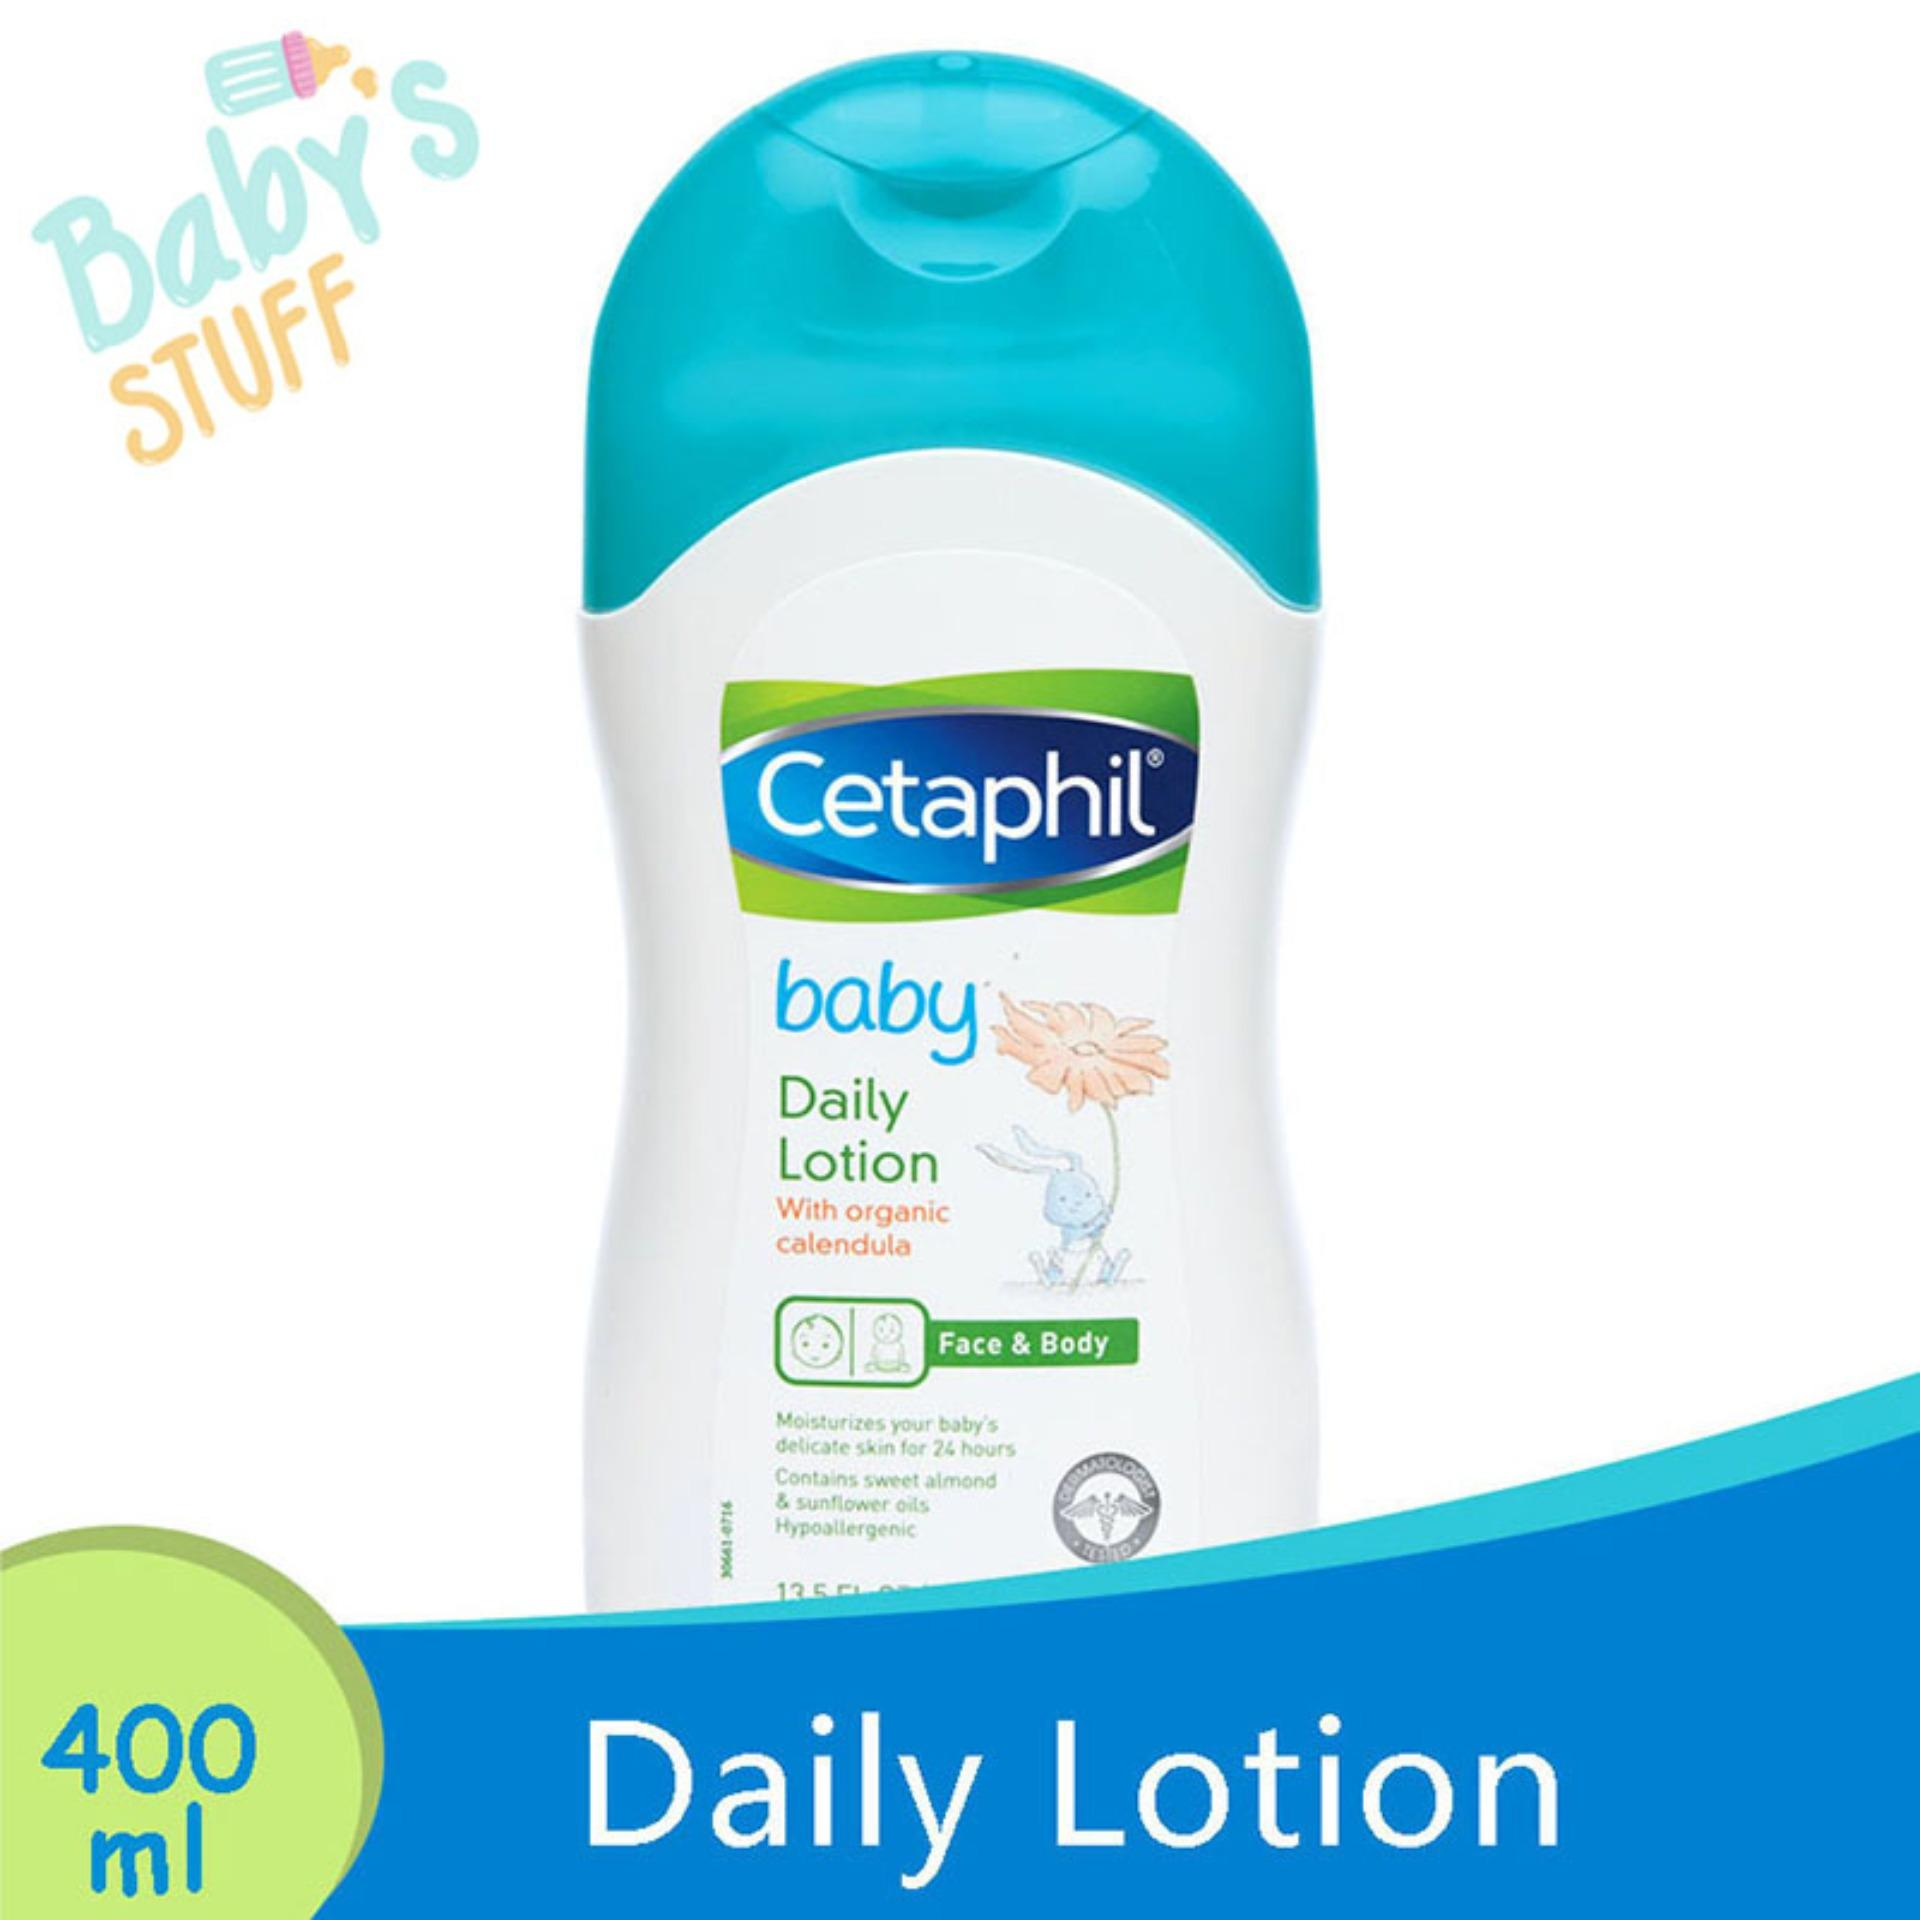 Cetaphil Baby Lotion 400 Ml - Losion Bayi By Babys Stuff.